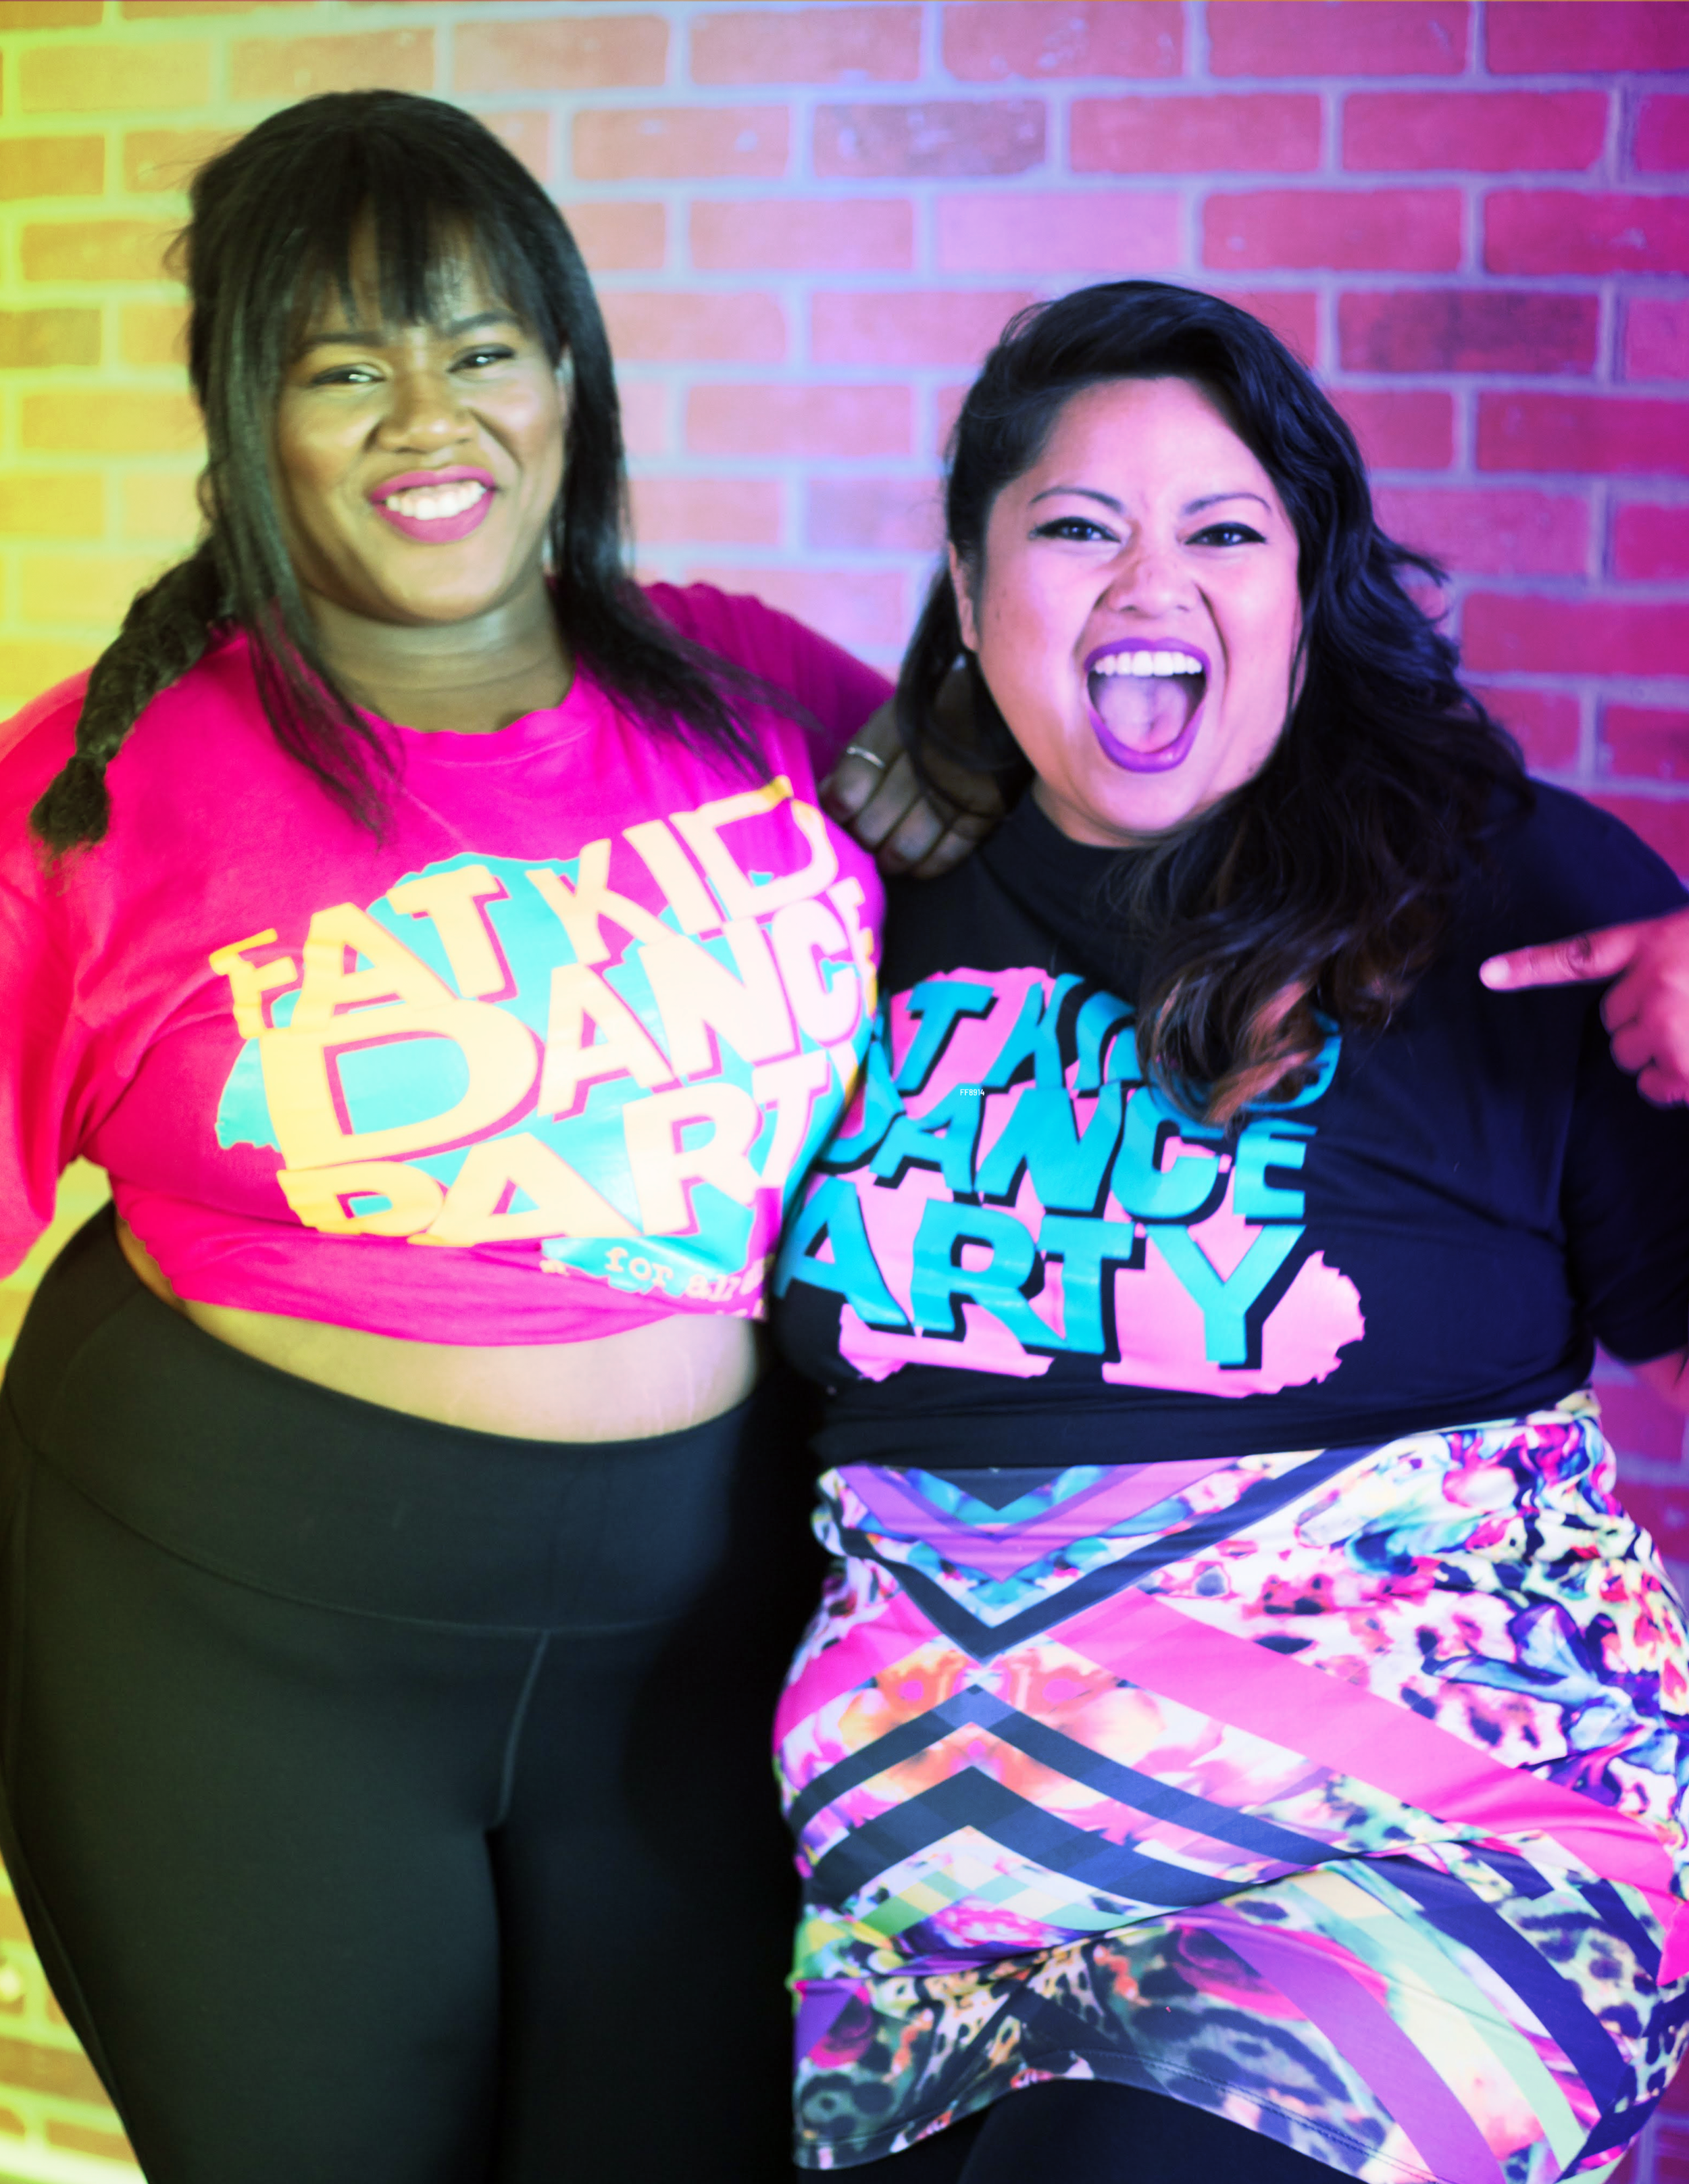 Fat Kid Dance Party is an act of dance floor reclamation - It's a mash-up of dance aerobics, line dancing, sing alongs and unbridled enthusiasm.If you've ever been called